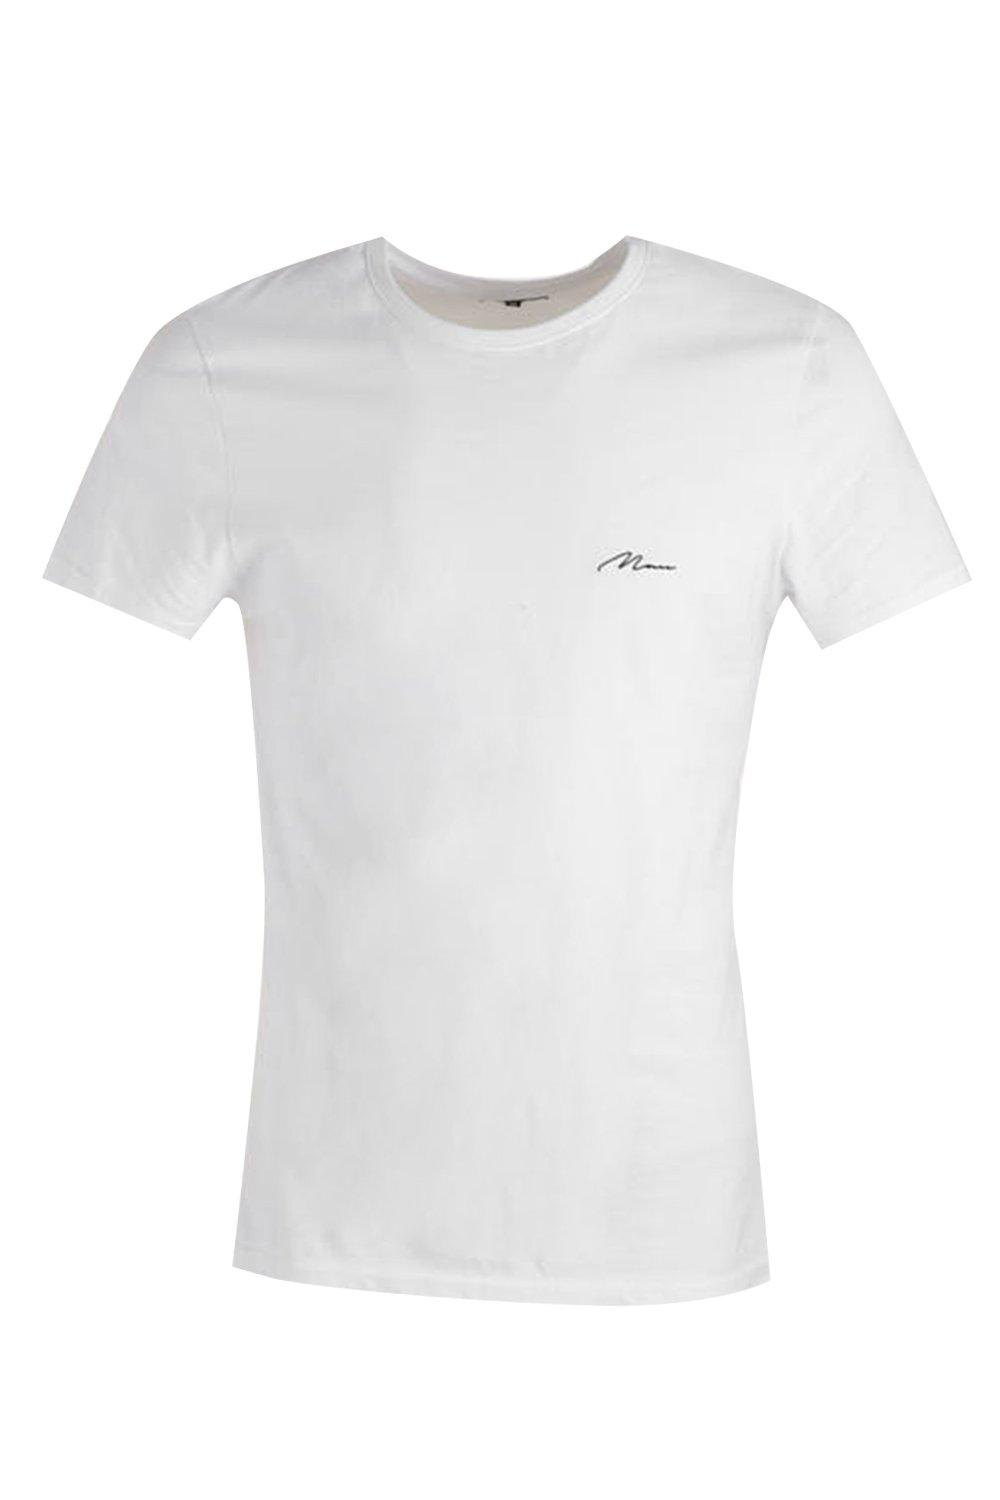 boohooMAN white Man Script Embroidered Muscle Fit T-Shirt